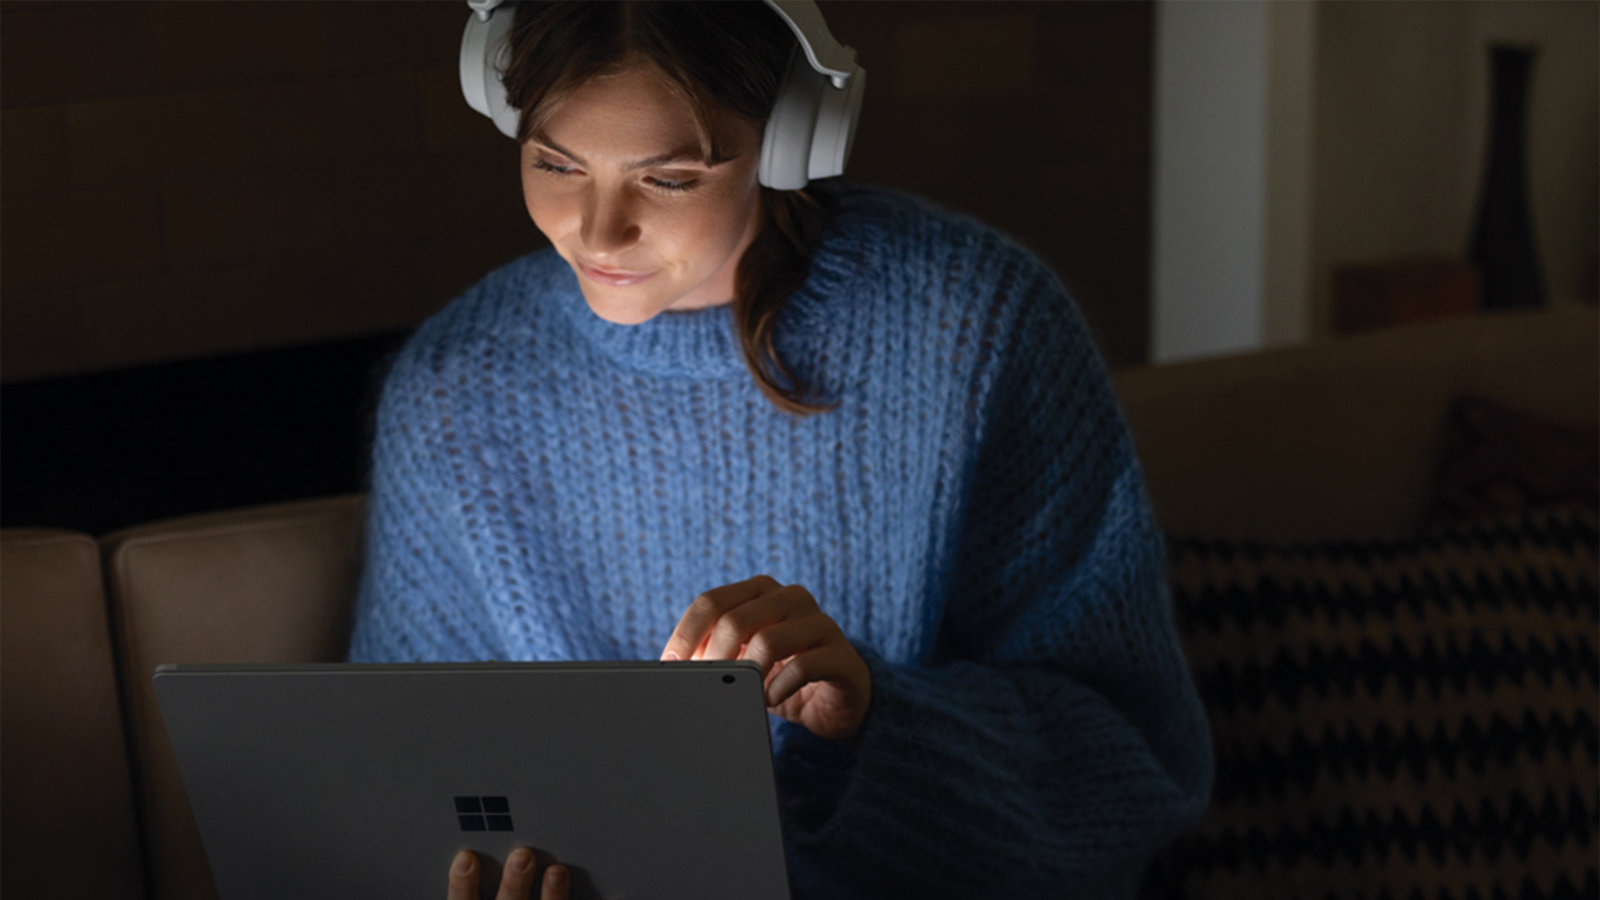 A woman listens to a movie with headphones.